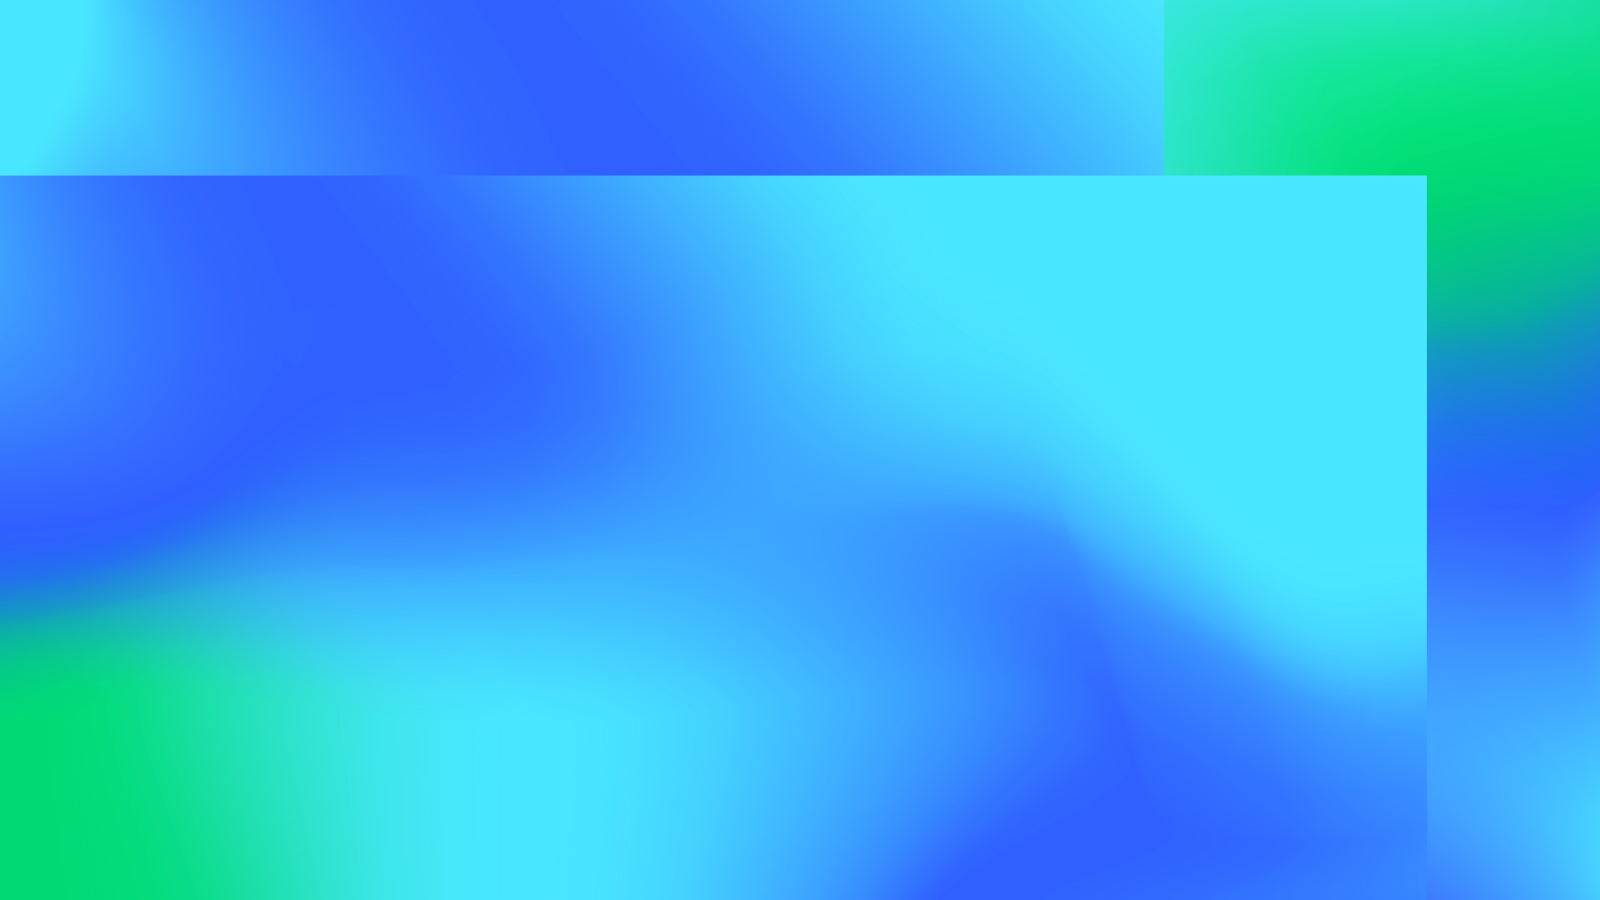 Abstract blue and teal splotchy background